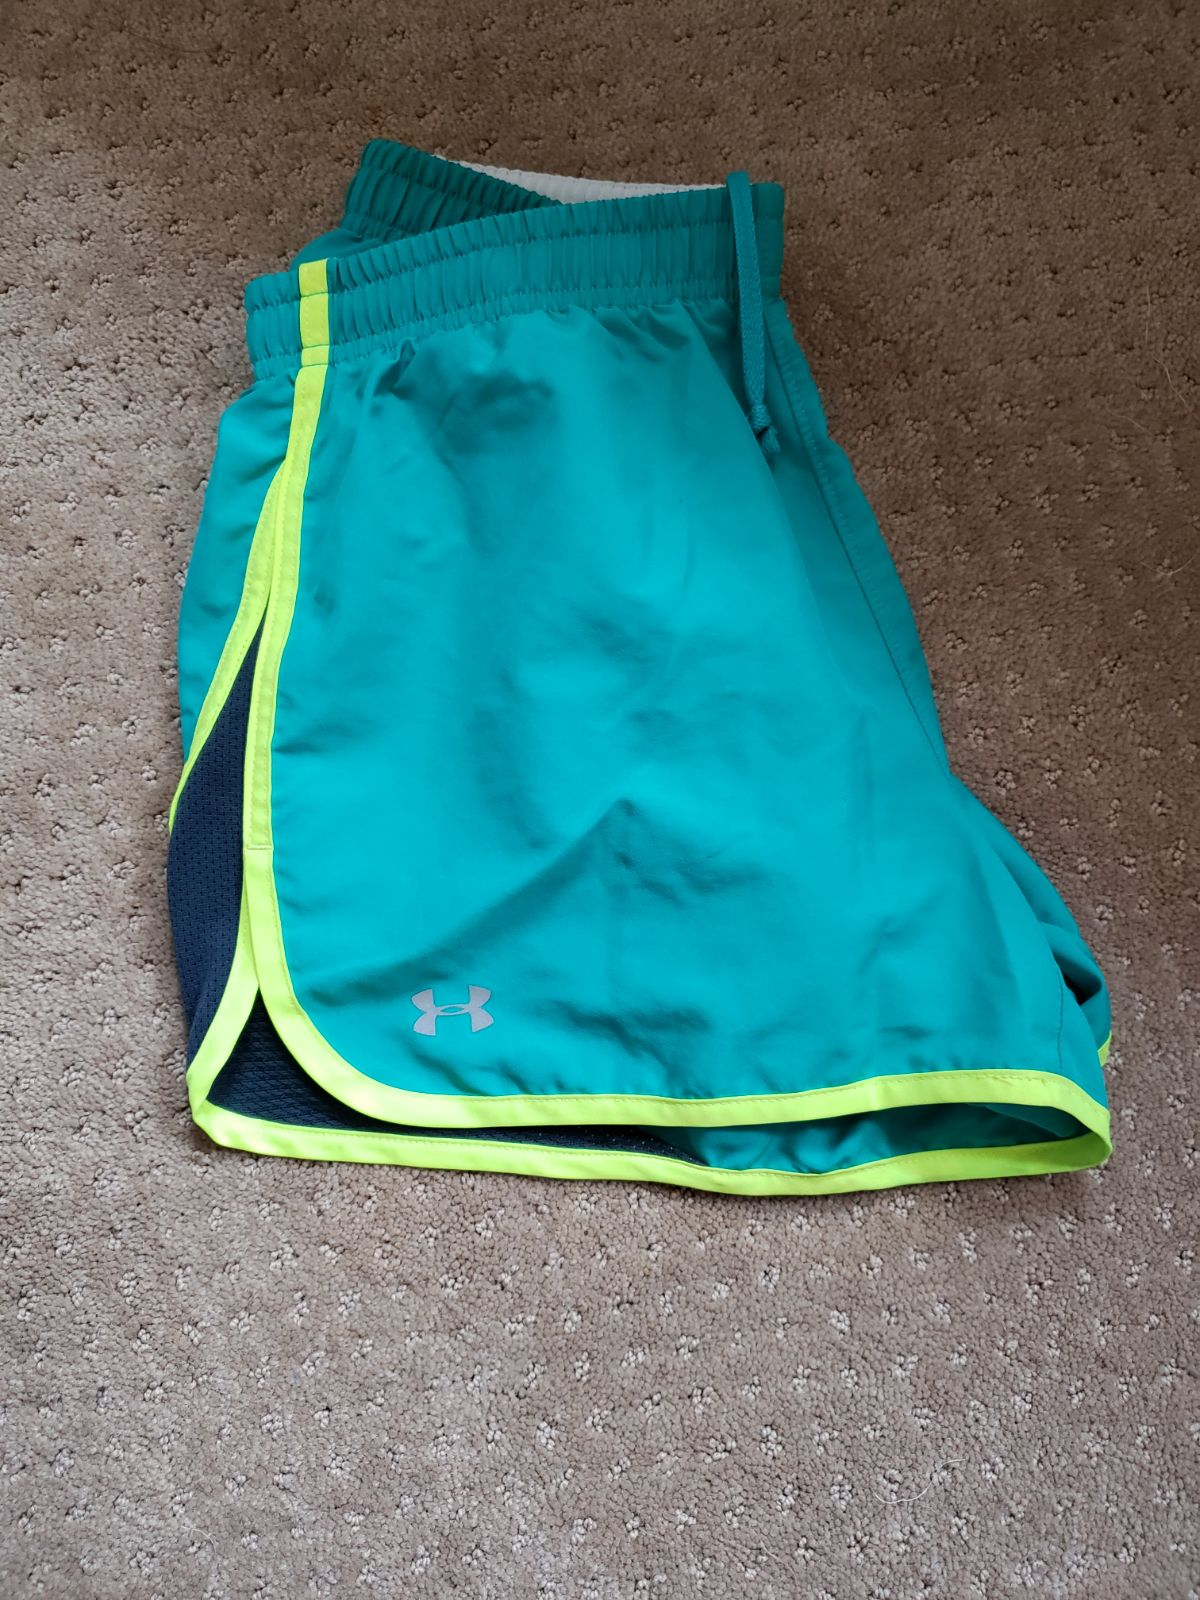 Teal womens Under Armour running shorts